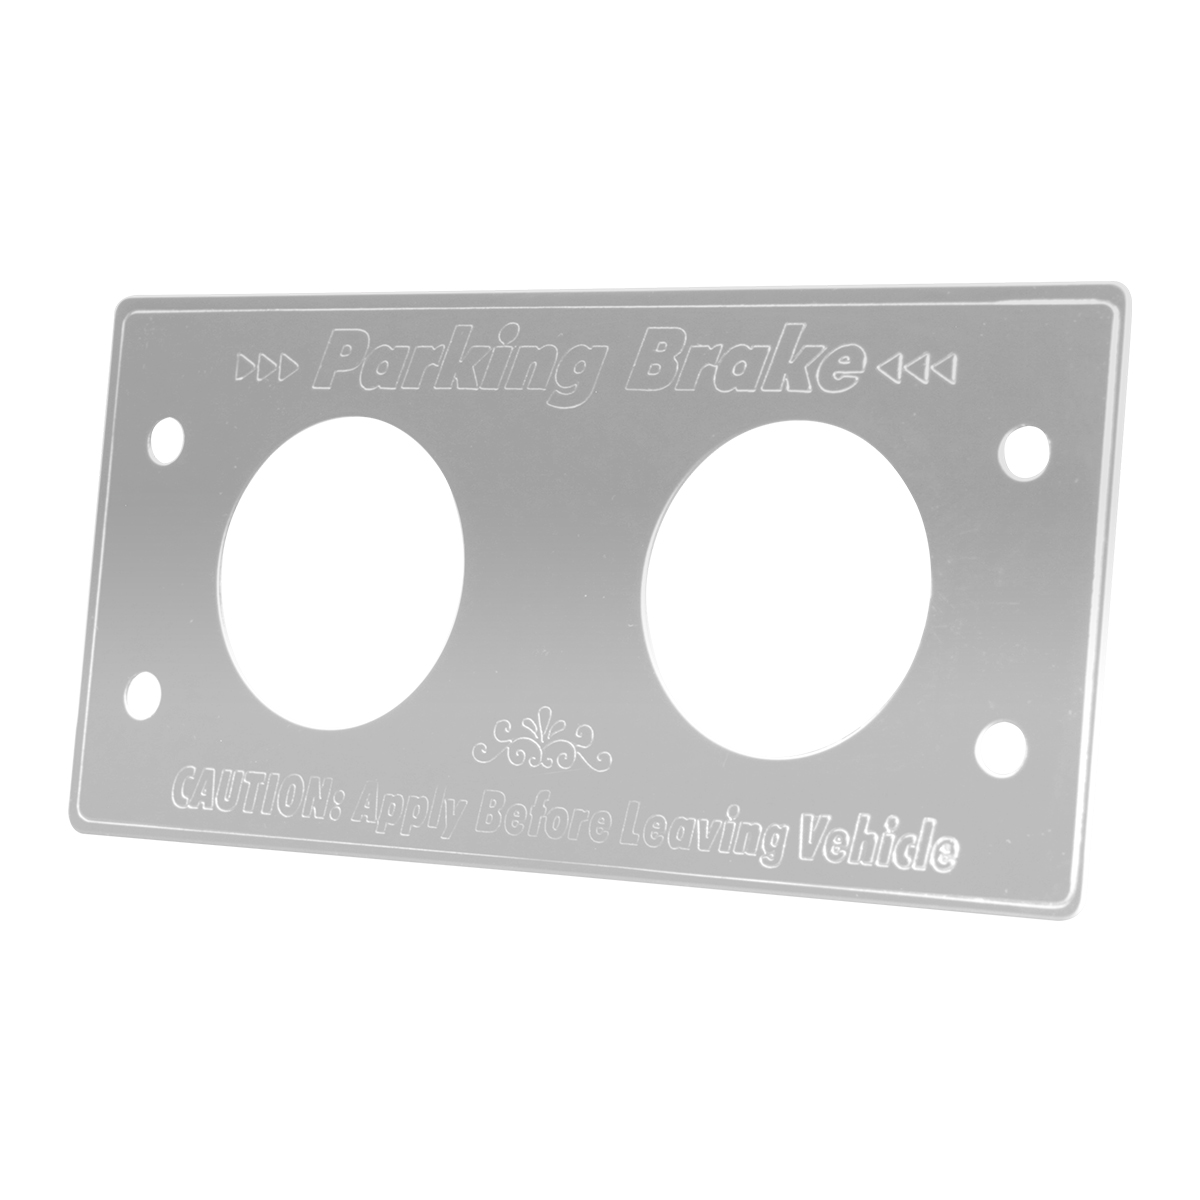 68620 Stainless Steel Parking Brake Control Switch Plate for Kenworth